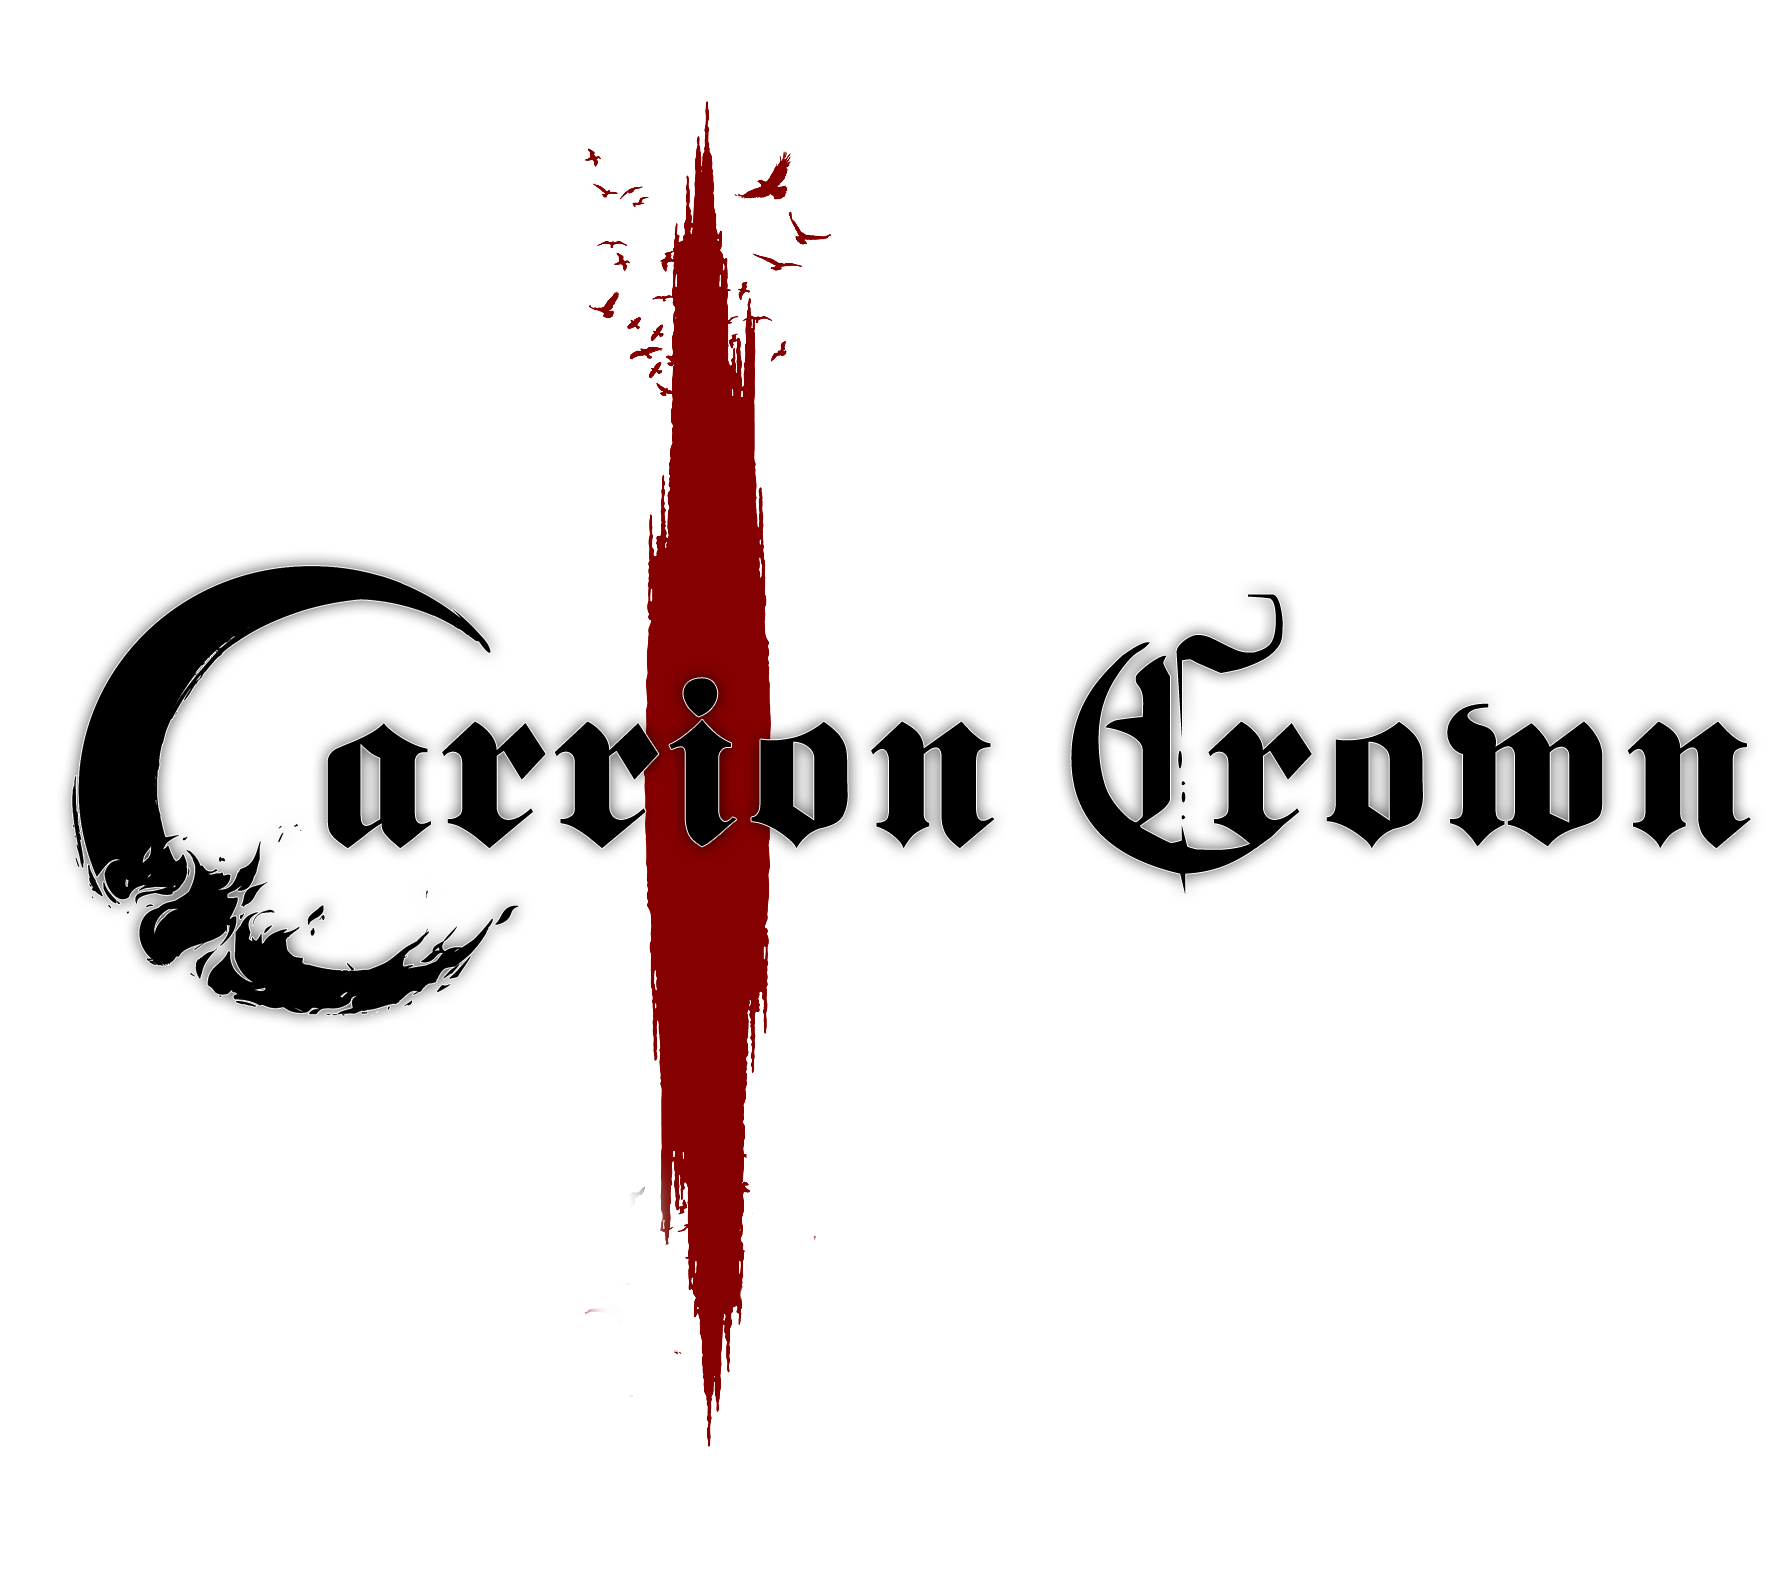 carrion-crown-logo.png